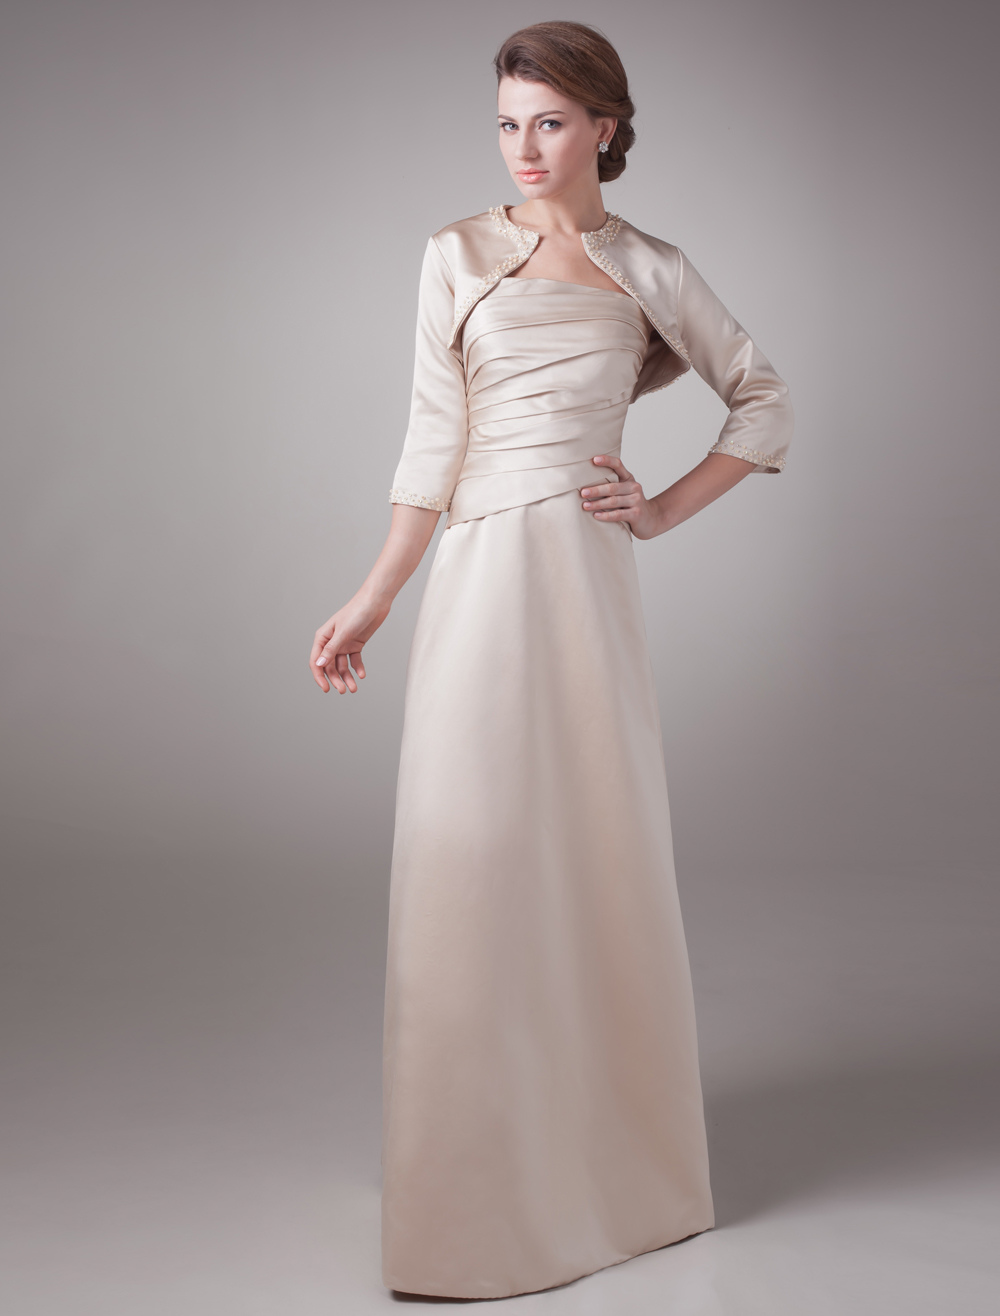 Popular Champagne Maxi Satin Mother of the Bride Dress